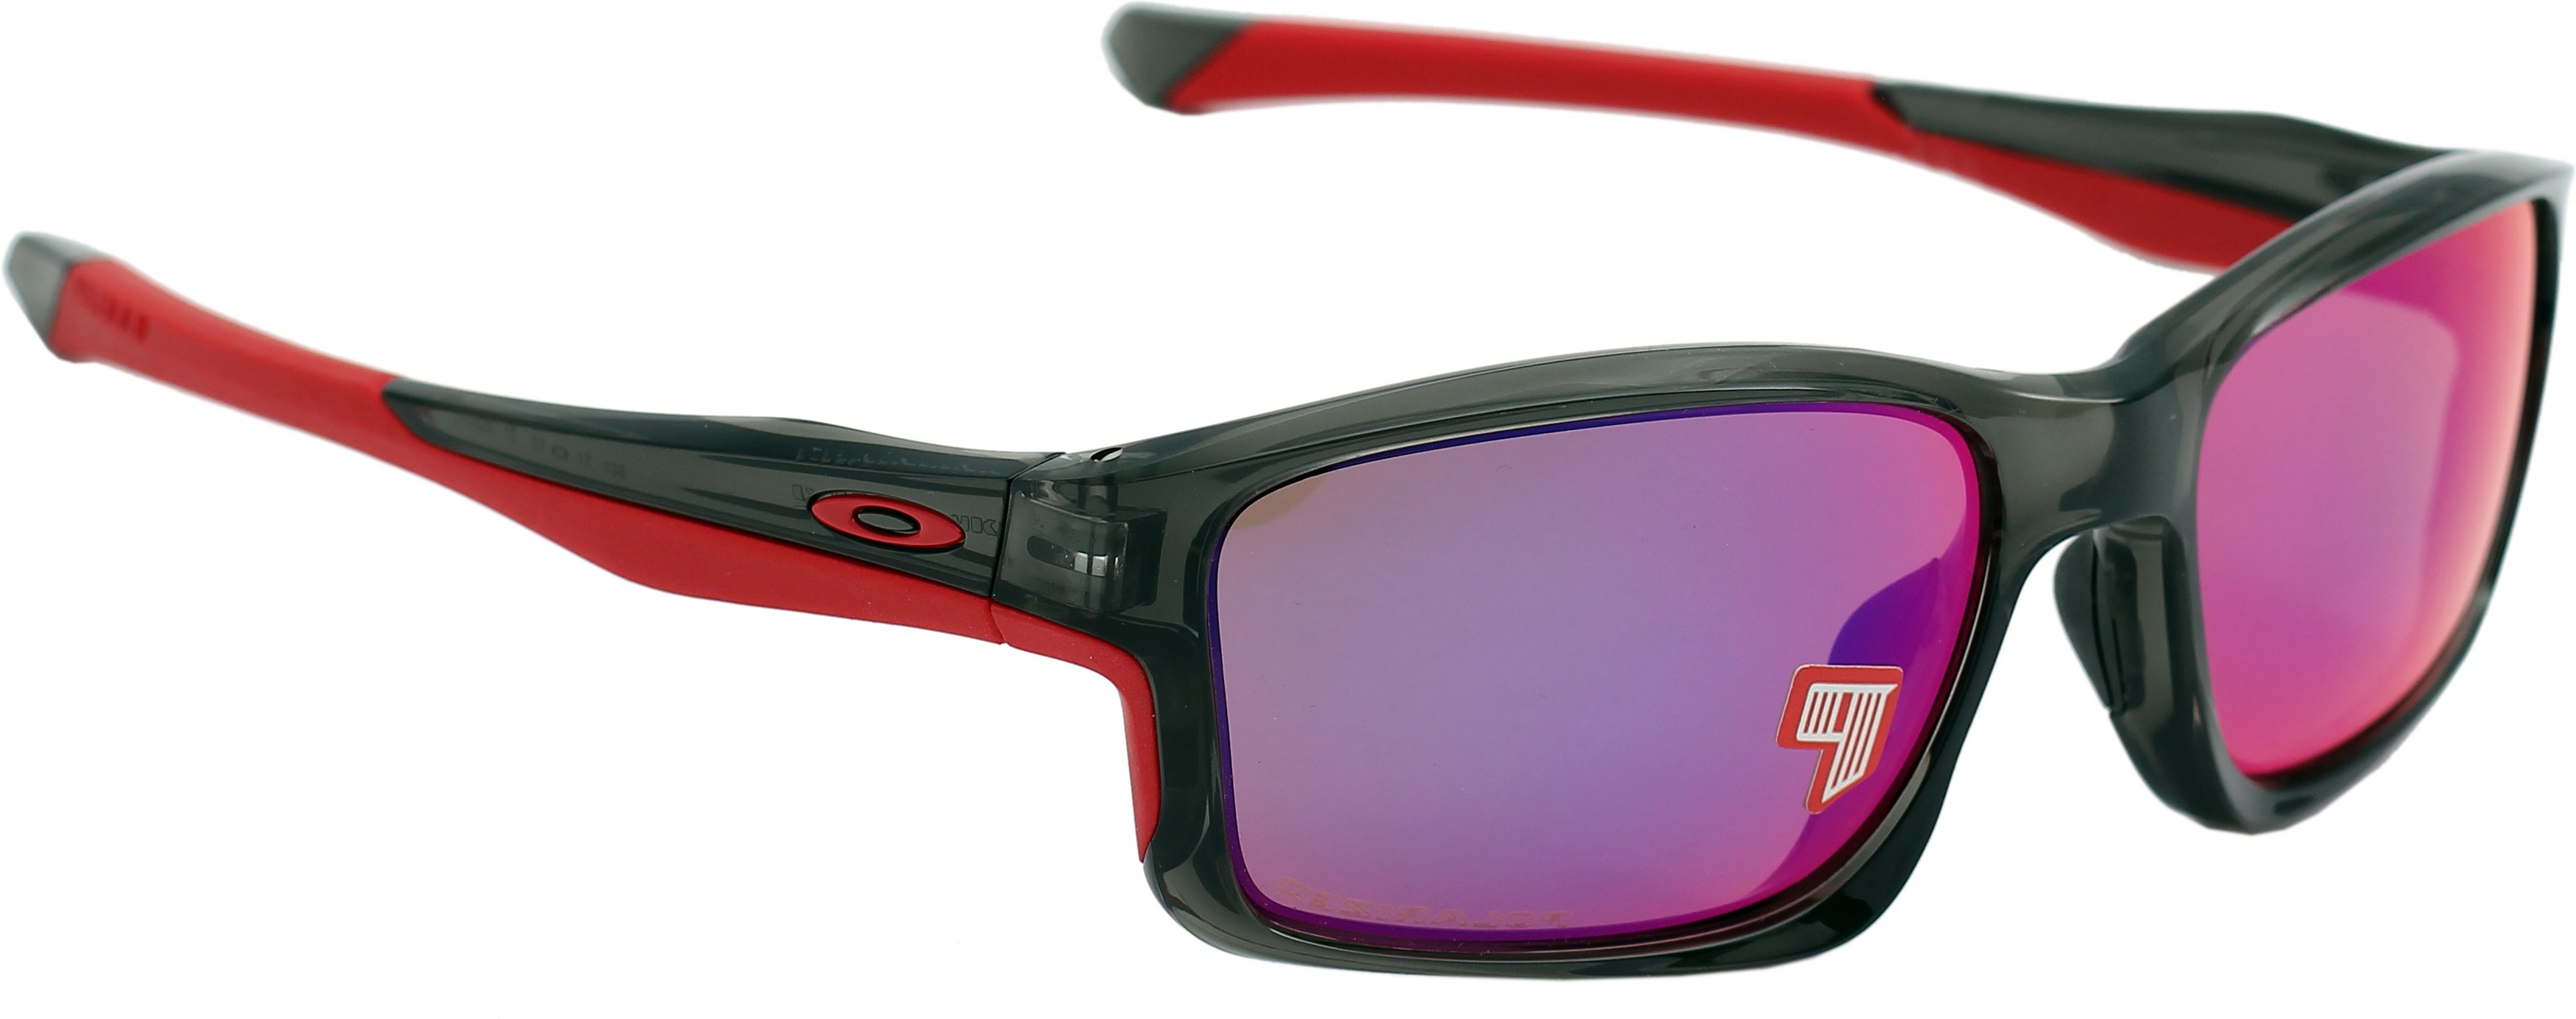 oakley sunglasses price in india f3qn  oakley watches prices in india